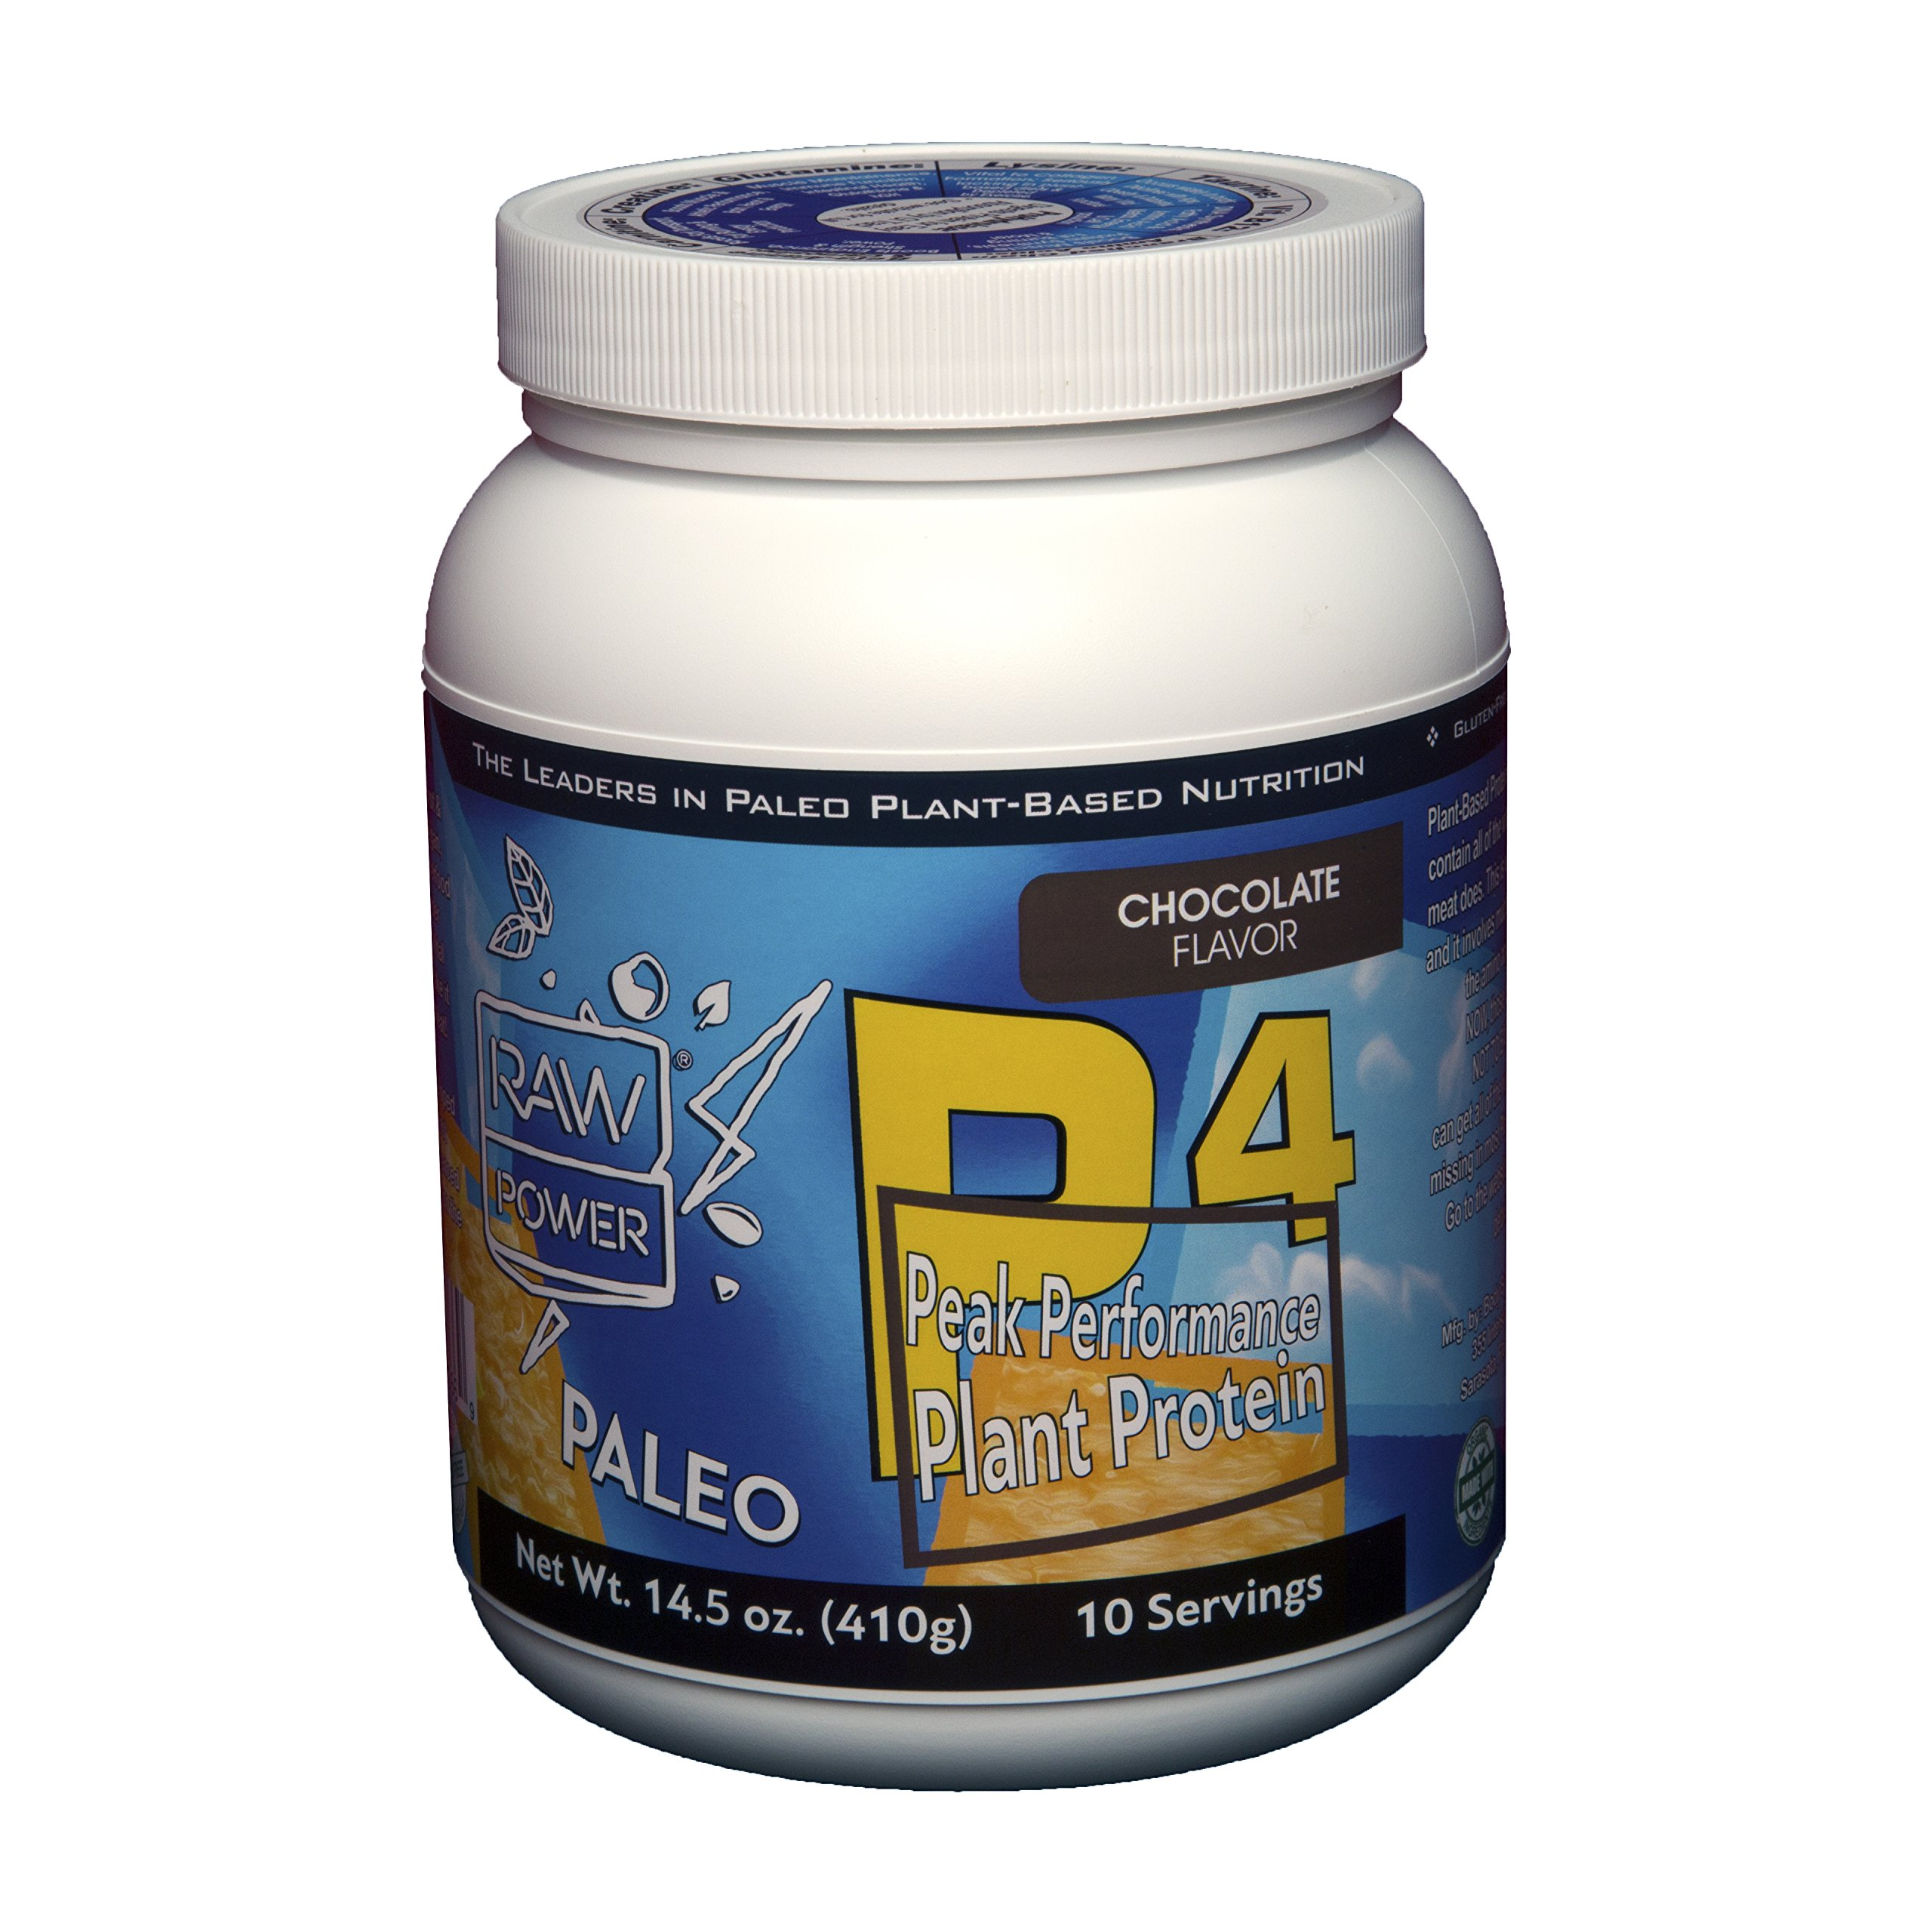 The Best Protein Powder on The Planet: More Balanced & Complete Than Meat (But Vegan) Paleo Organic Pumpkin Seed Protein + 11 Vital Nutrients Lacking In Most Diets - 10 Servings - Chocolate Flavor by Body Symphony